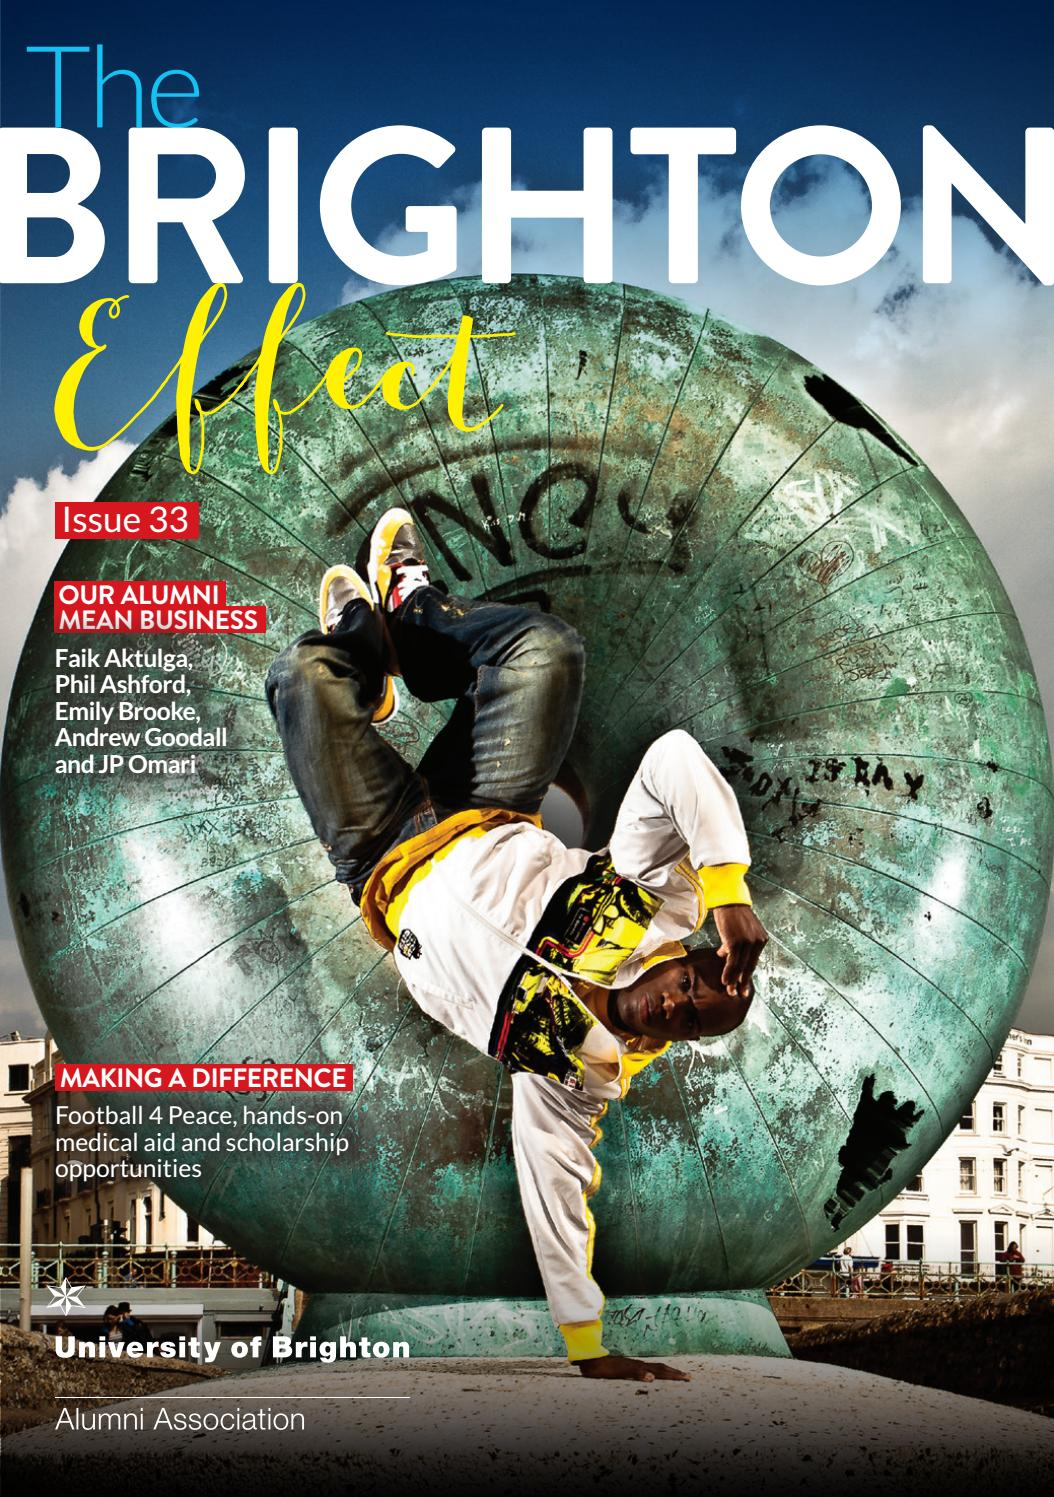 The Brighton Effect 33 issuu by University of Brighton - issuu